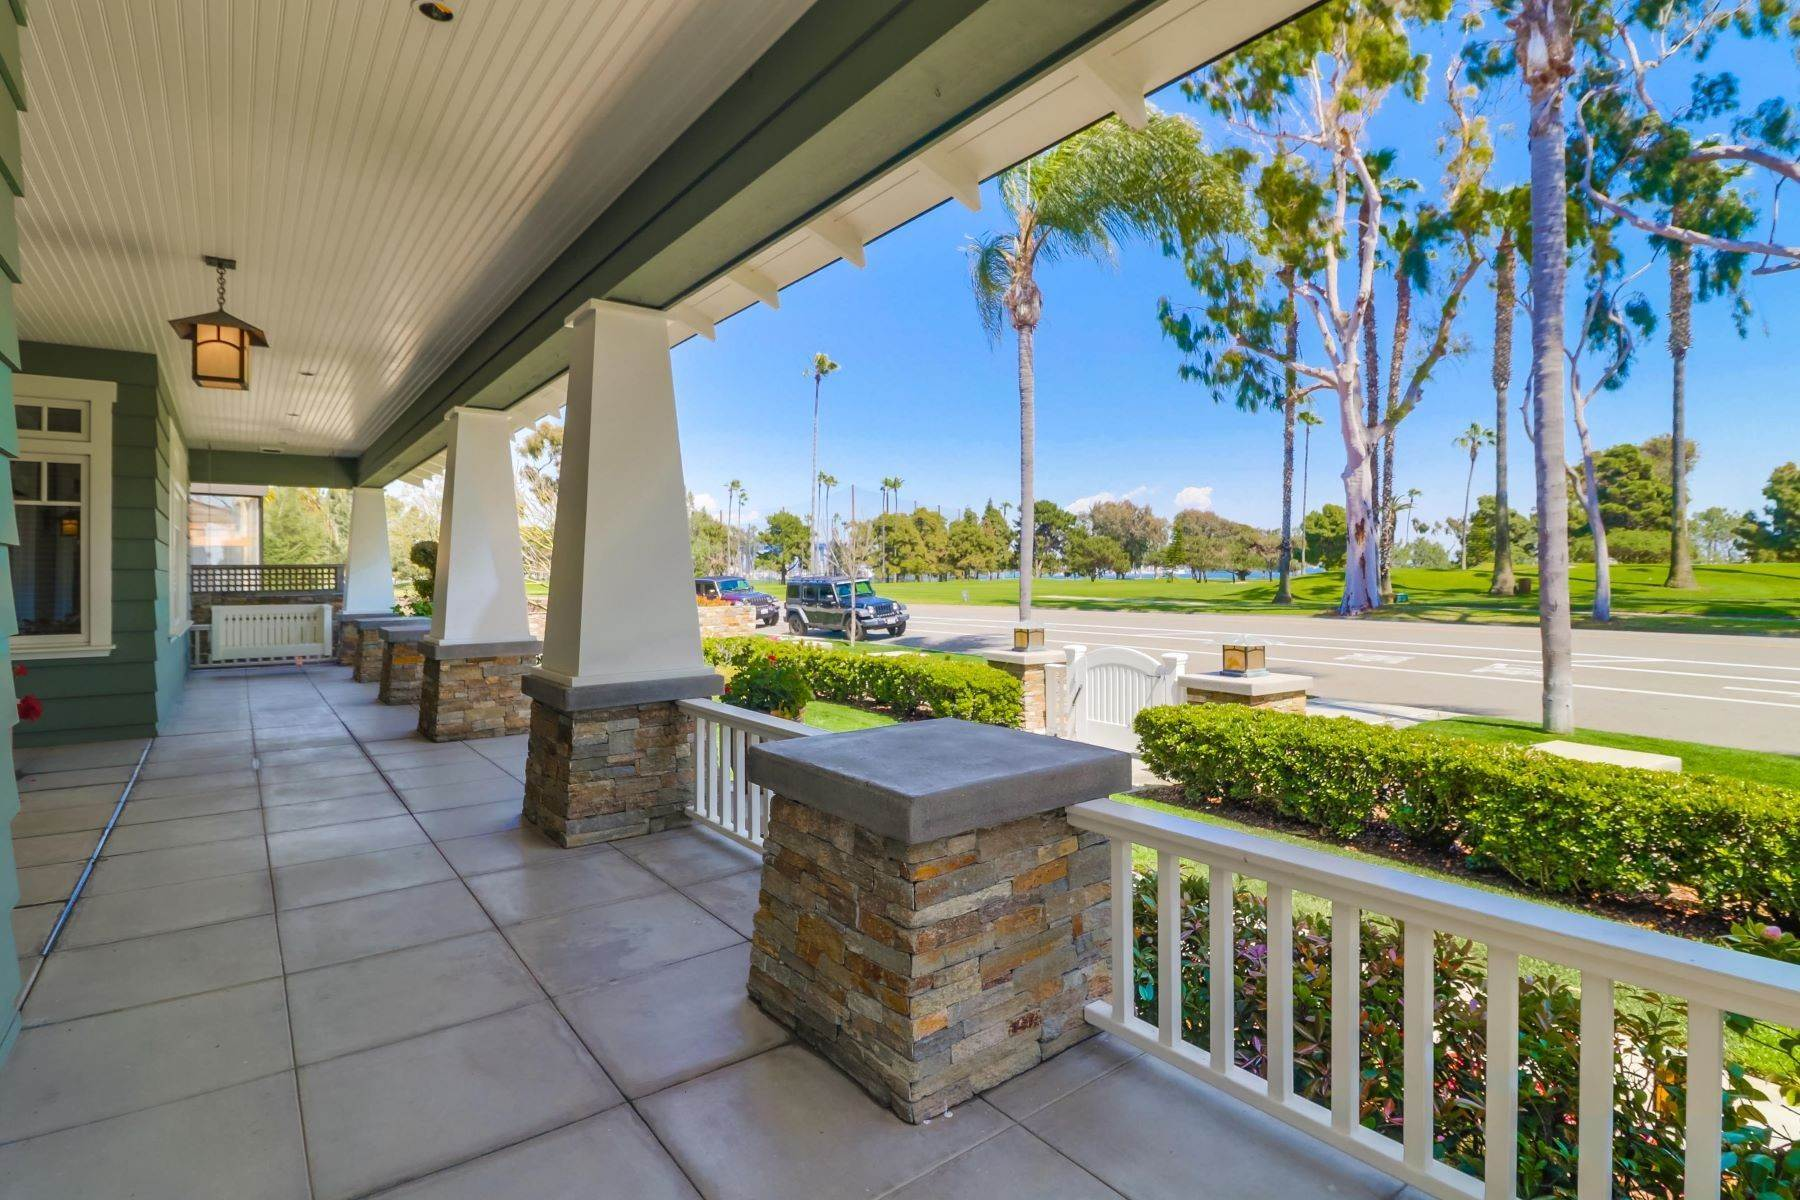 3. Single Family Homes for Sale at 922 Glorietta Blvd Coronado, California 92118 United States